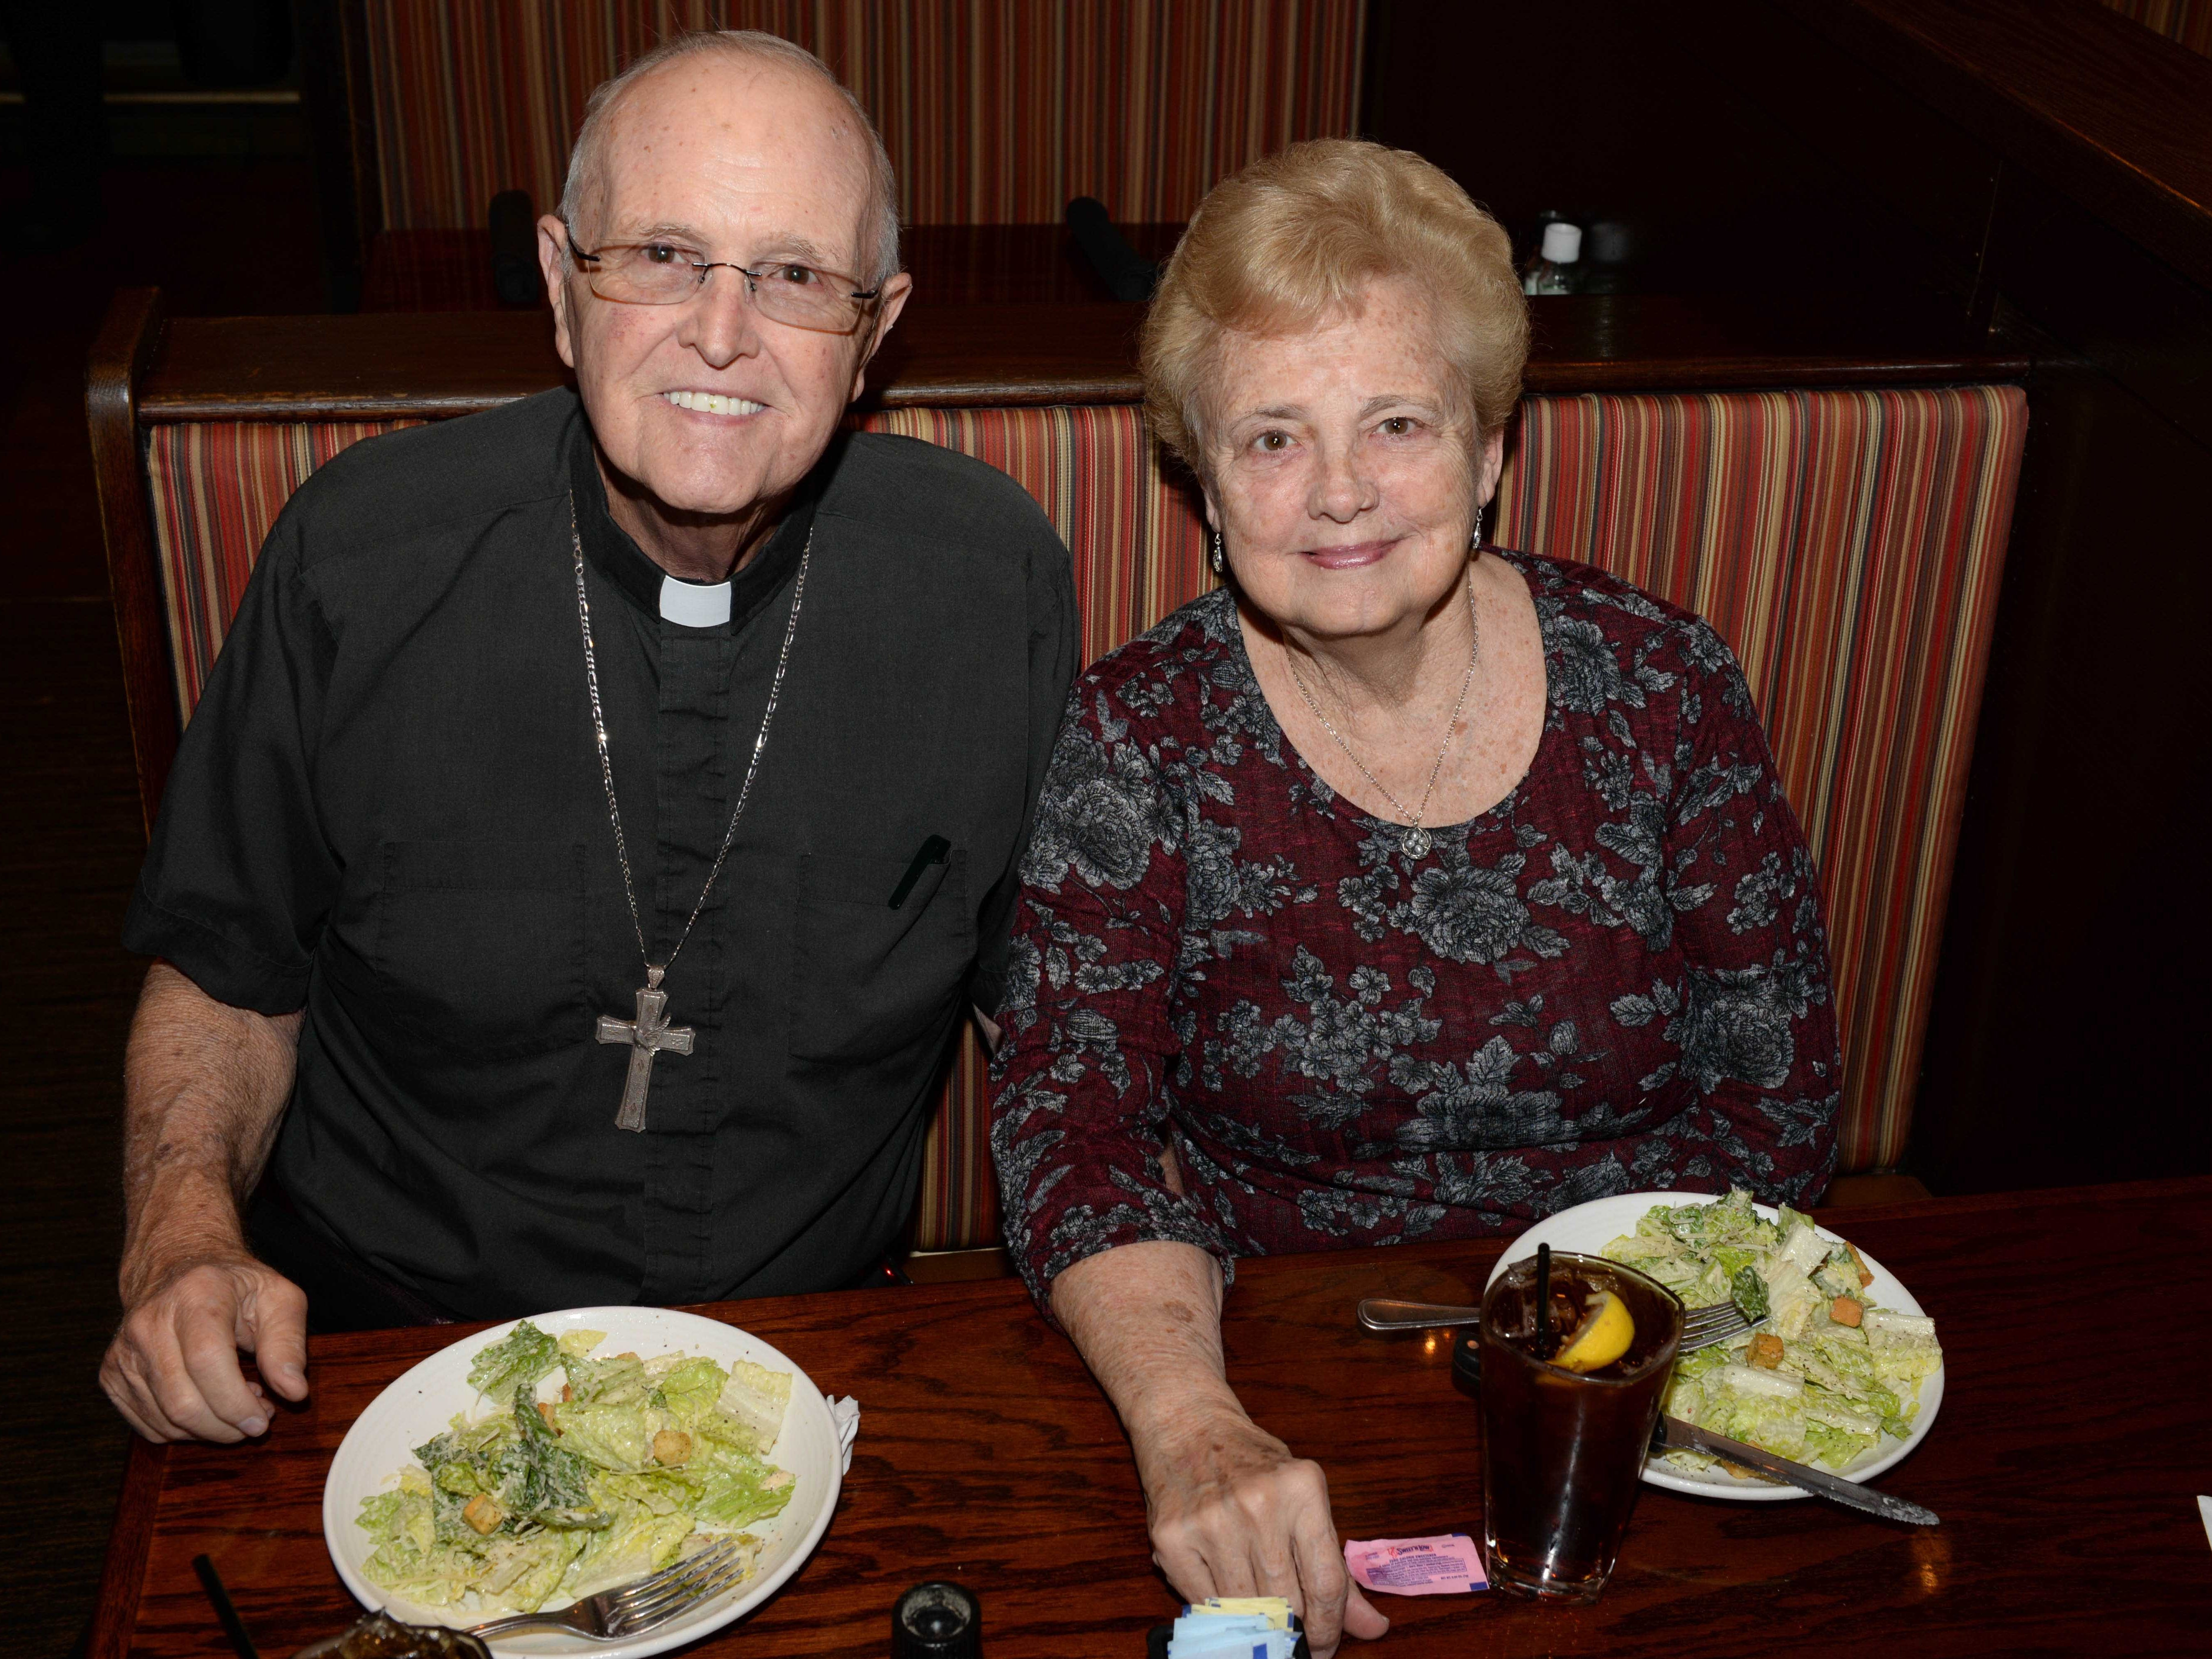 The Rev. Cecil Radcliff and Rhonda Radcliff at Carrabba's Italian Grill in St. Lucie West.